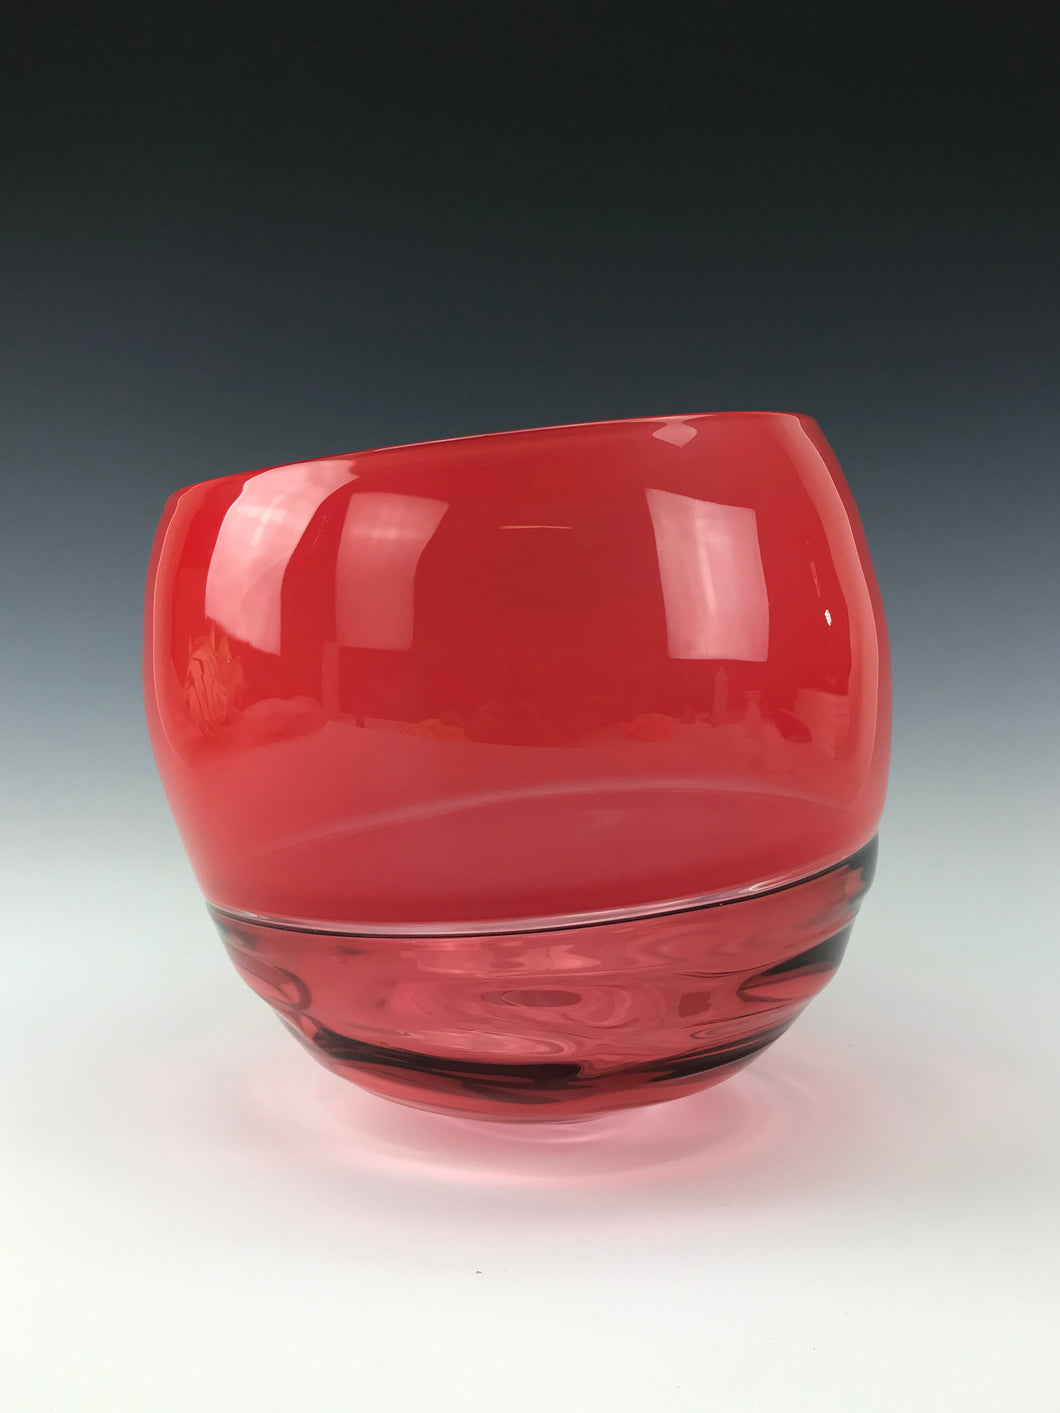 Gravity Bowl - Big Red